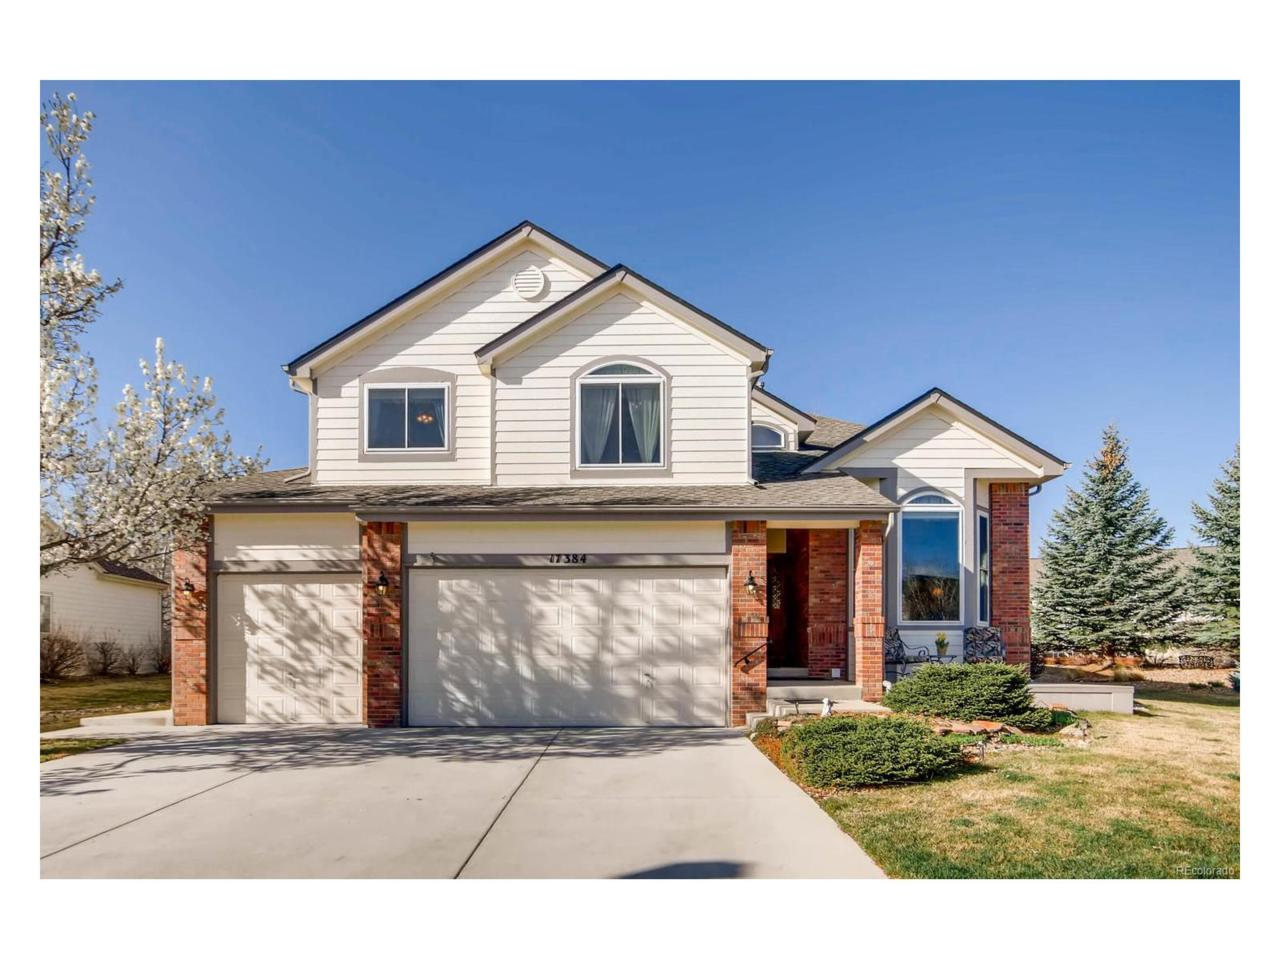 17384 W 63rd Drive, Arvada, CO 80403 (MLS #5199023) :: 8z Real Estate